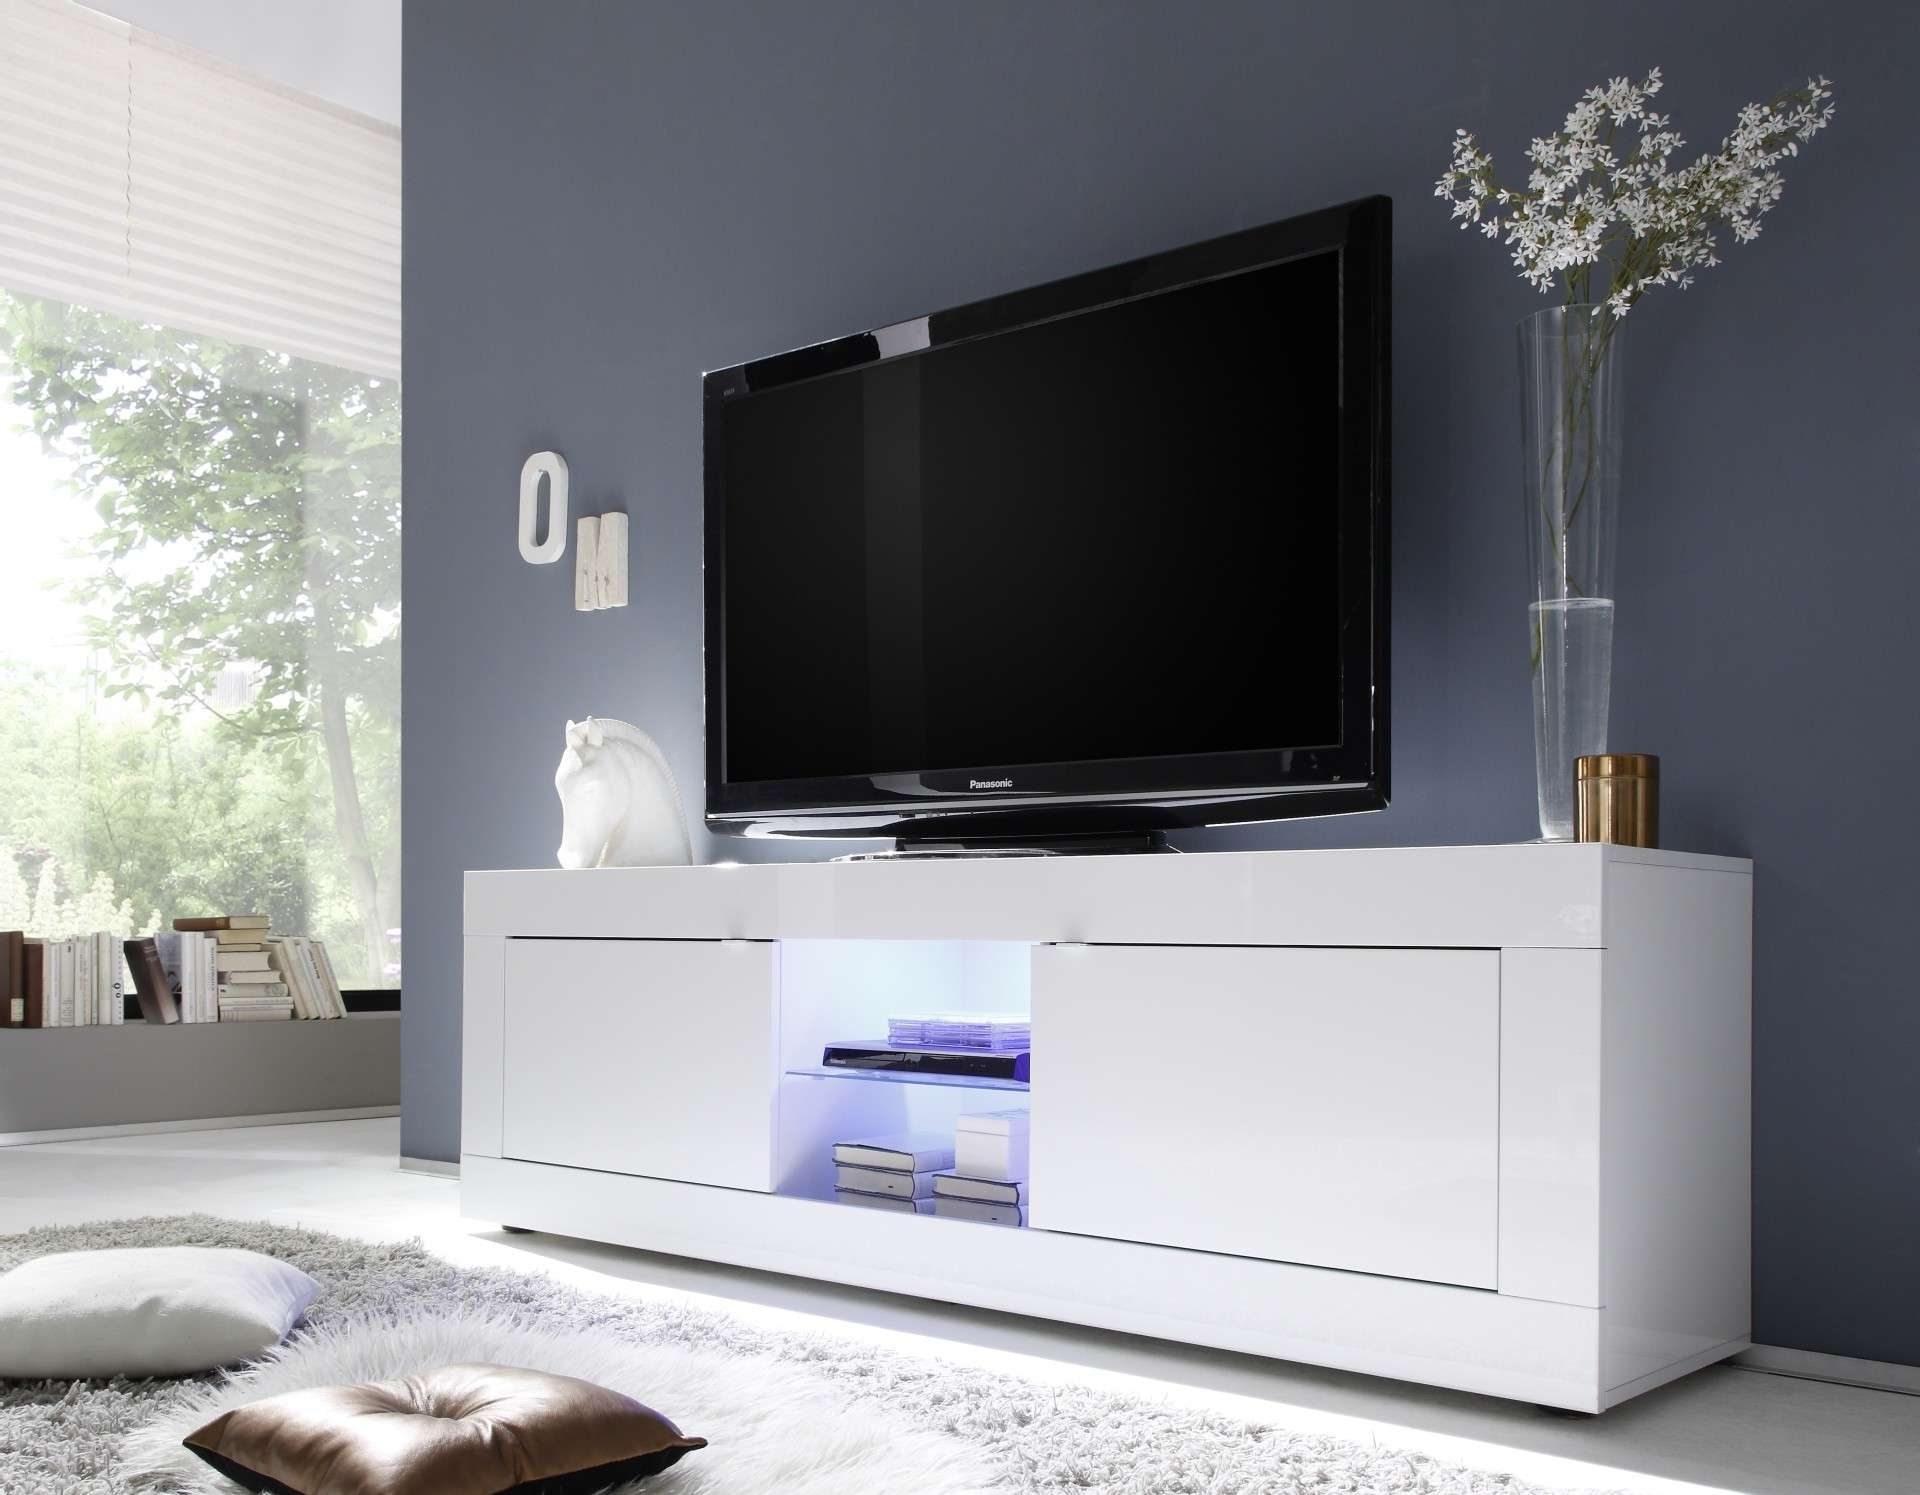 Dolcevita Ii Gloss Tv Stand – Tv Stands – Sena Home Furniture In White High Gloss Tv Stands Unit Cabinet (View 4 of 15)